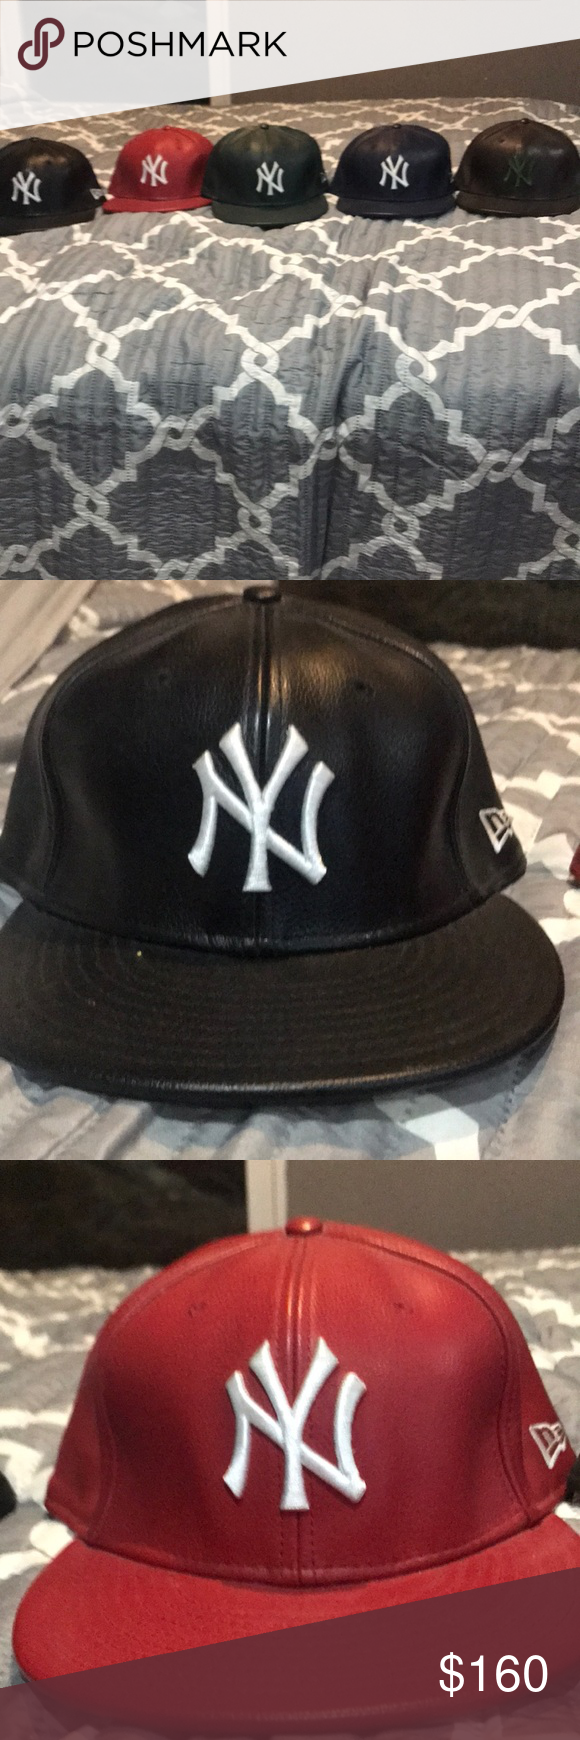 33a17b3ef06 Lot Leather NY Yankee Lot Bl R G 7 3 4 B Br 7 5 8 Lot Of Gently Used Leather  New York Yankee Hats Black Red Green Size 7 3 4 Navy Blue Brown Green 7 5 8  New ...